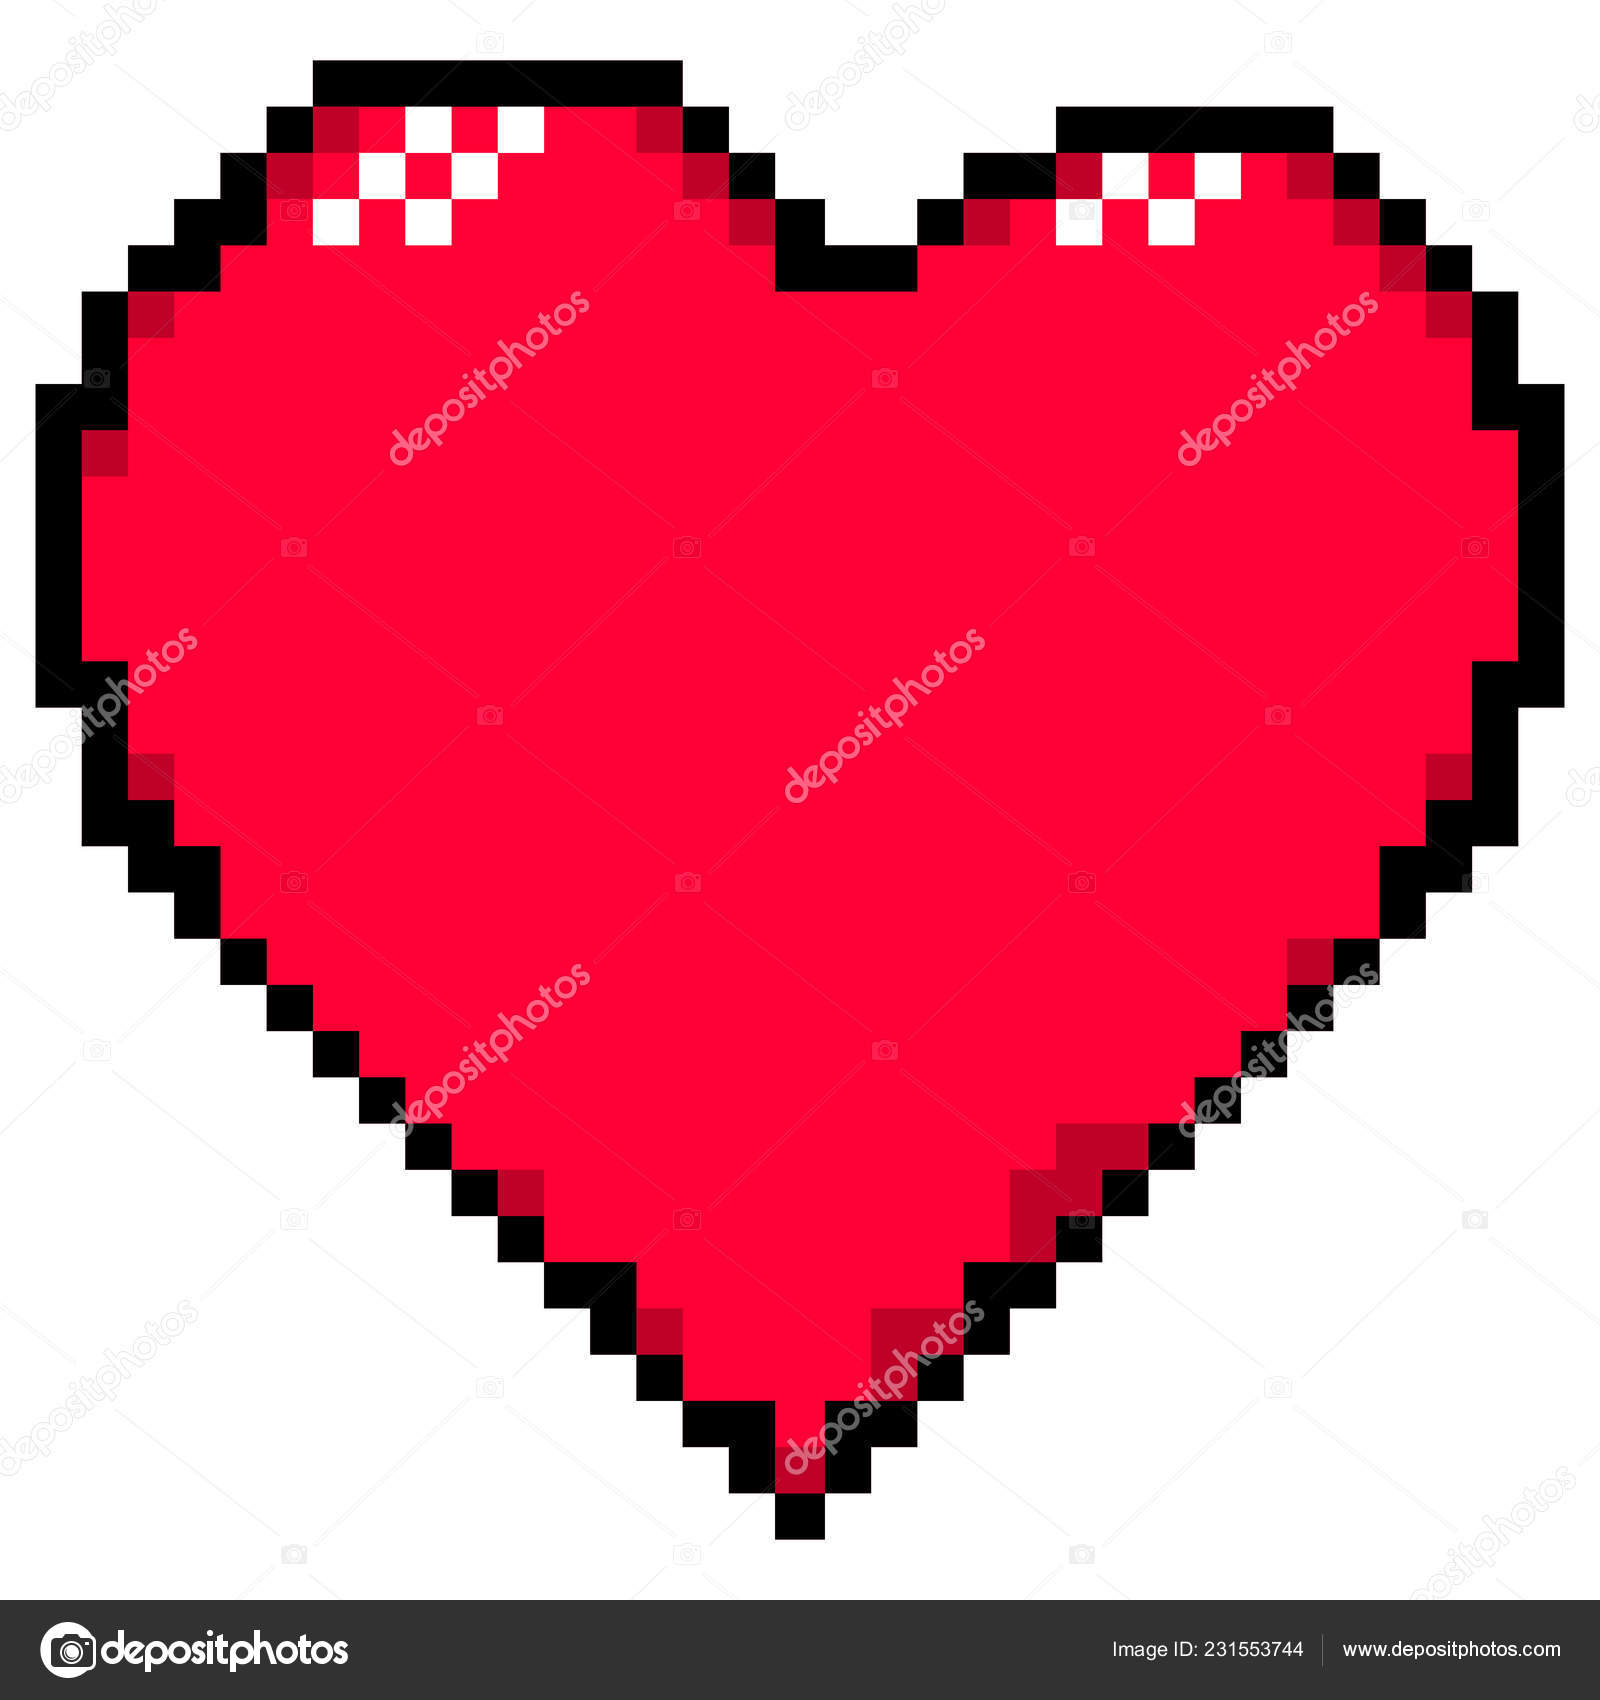 Red Heart Created Style Pixel Art Design Graphic Element